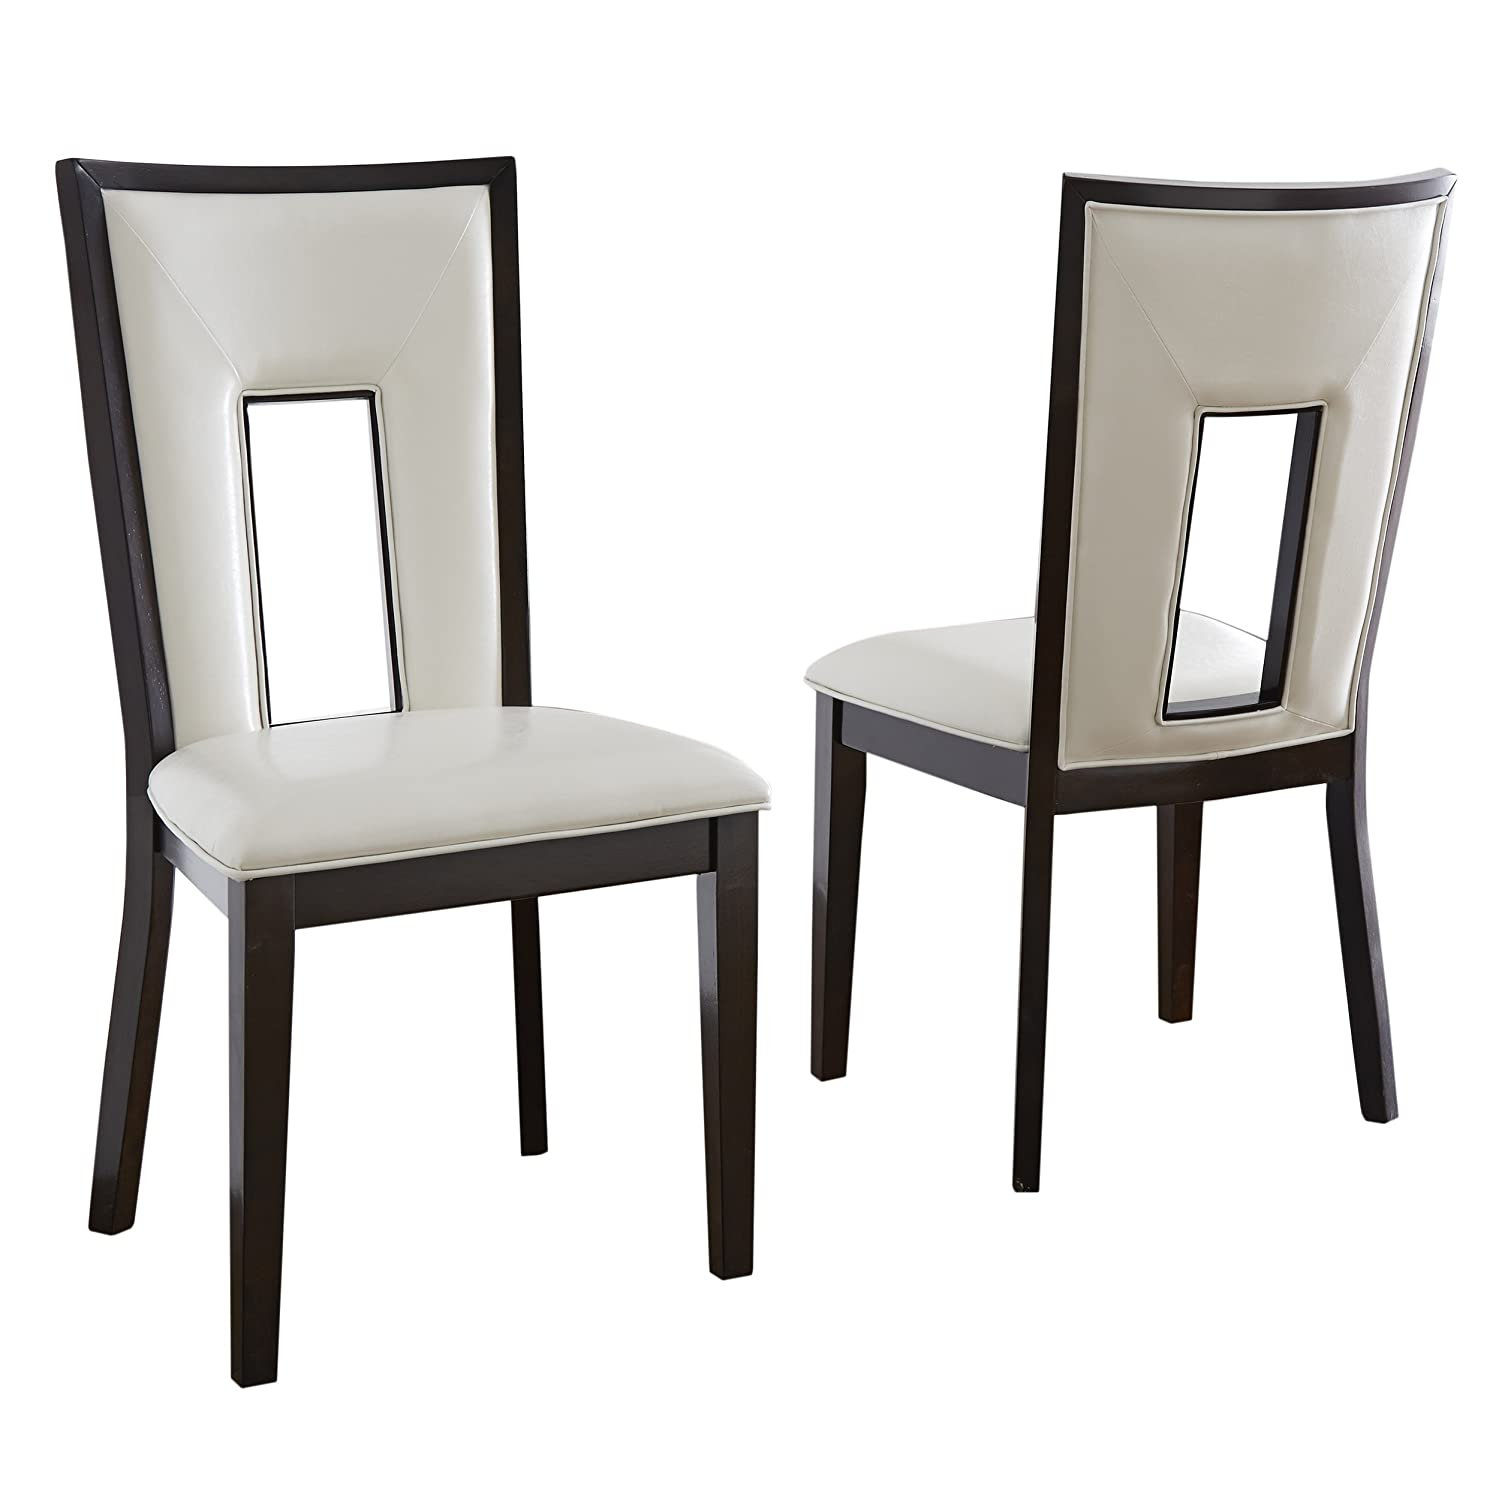 Steve Silver Company Delano Side Chairs Set of 2 , 19 x 23 x 40